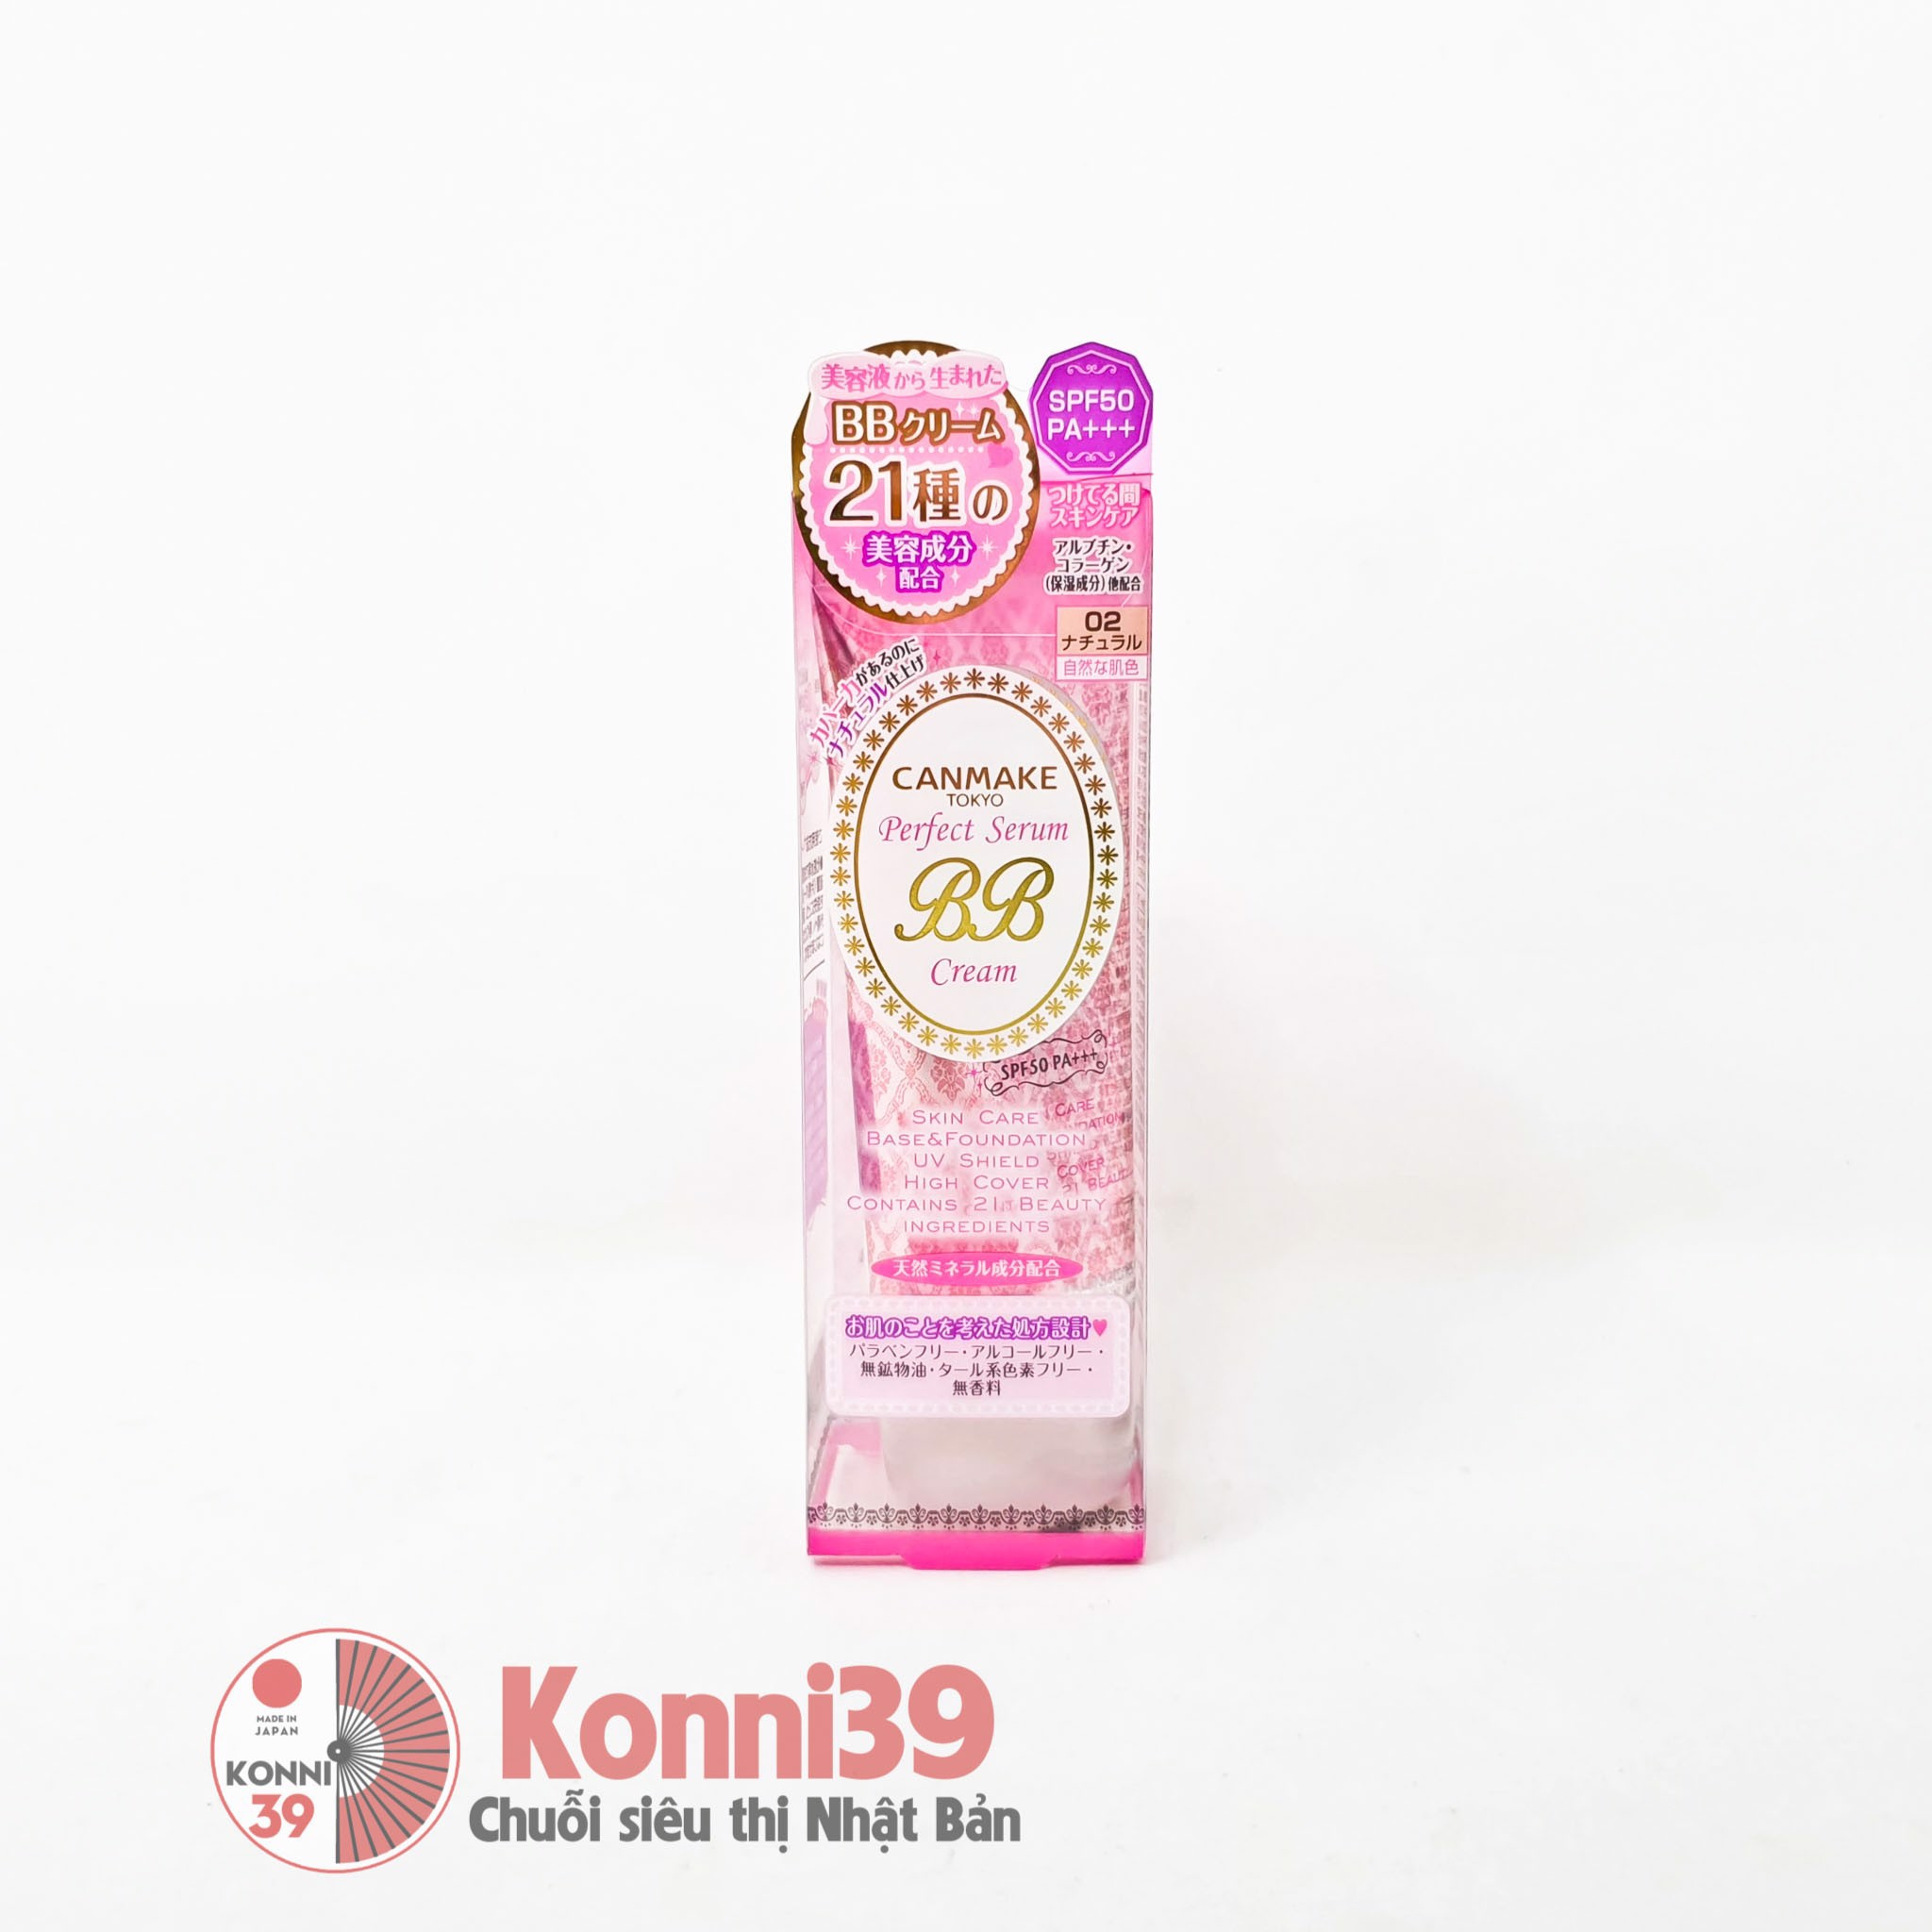 Canmake Perfect Serum BB Cream SPF50/PA+++ 30g (2 Loại)